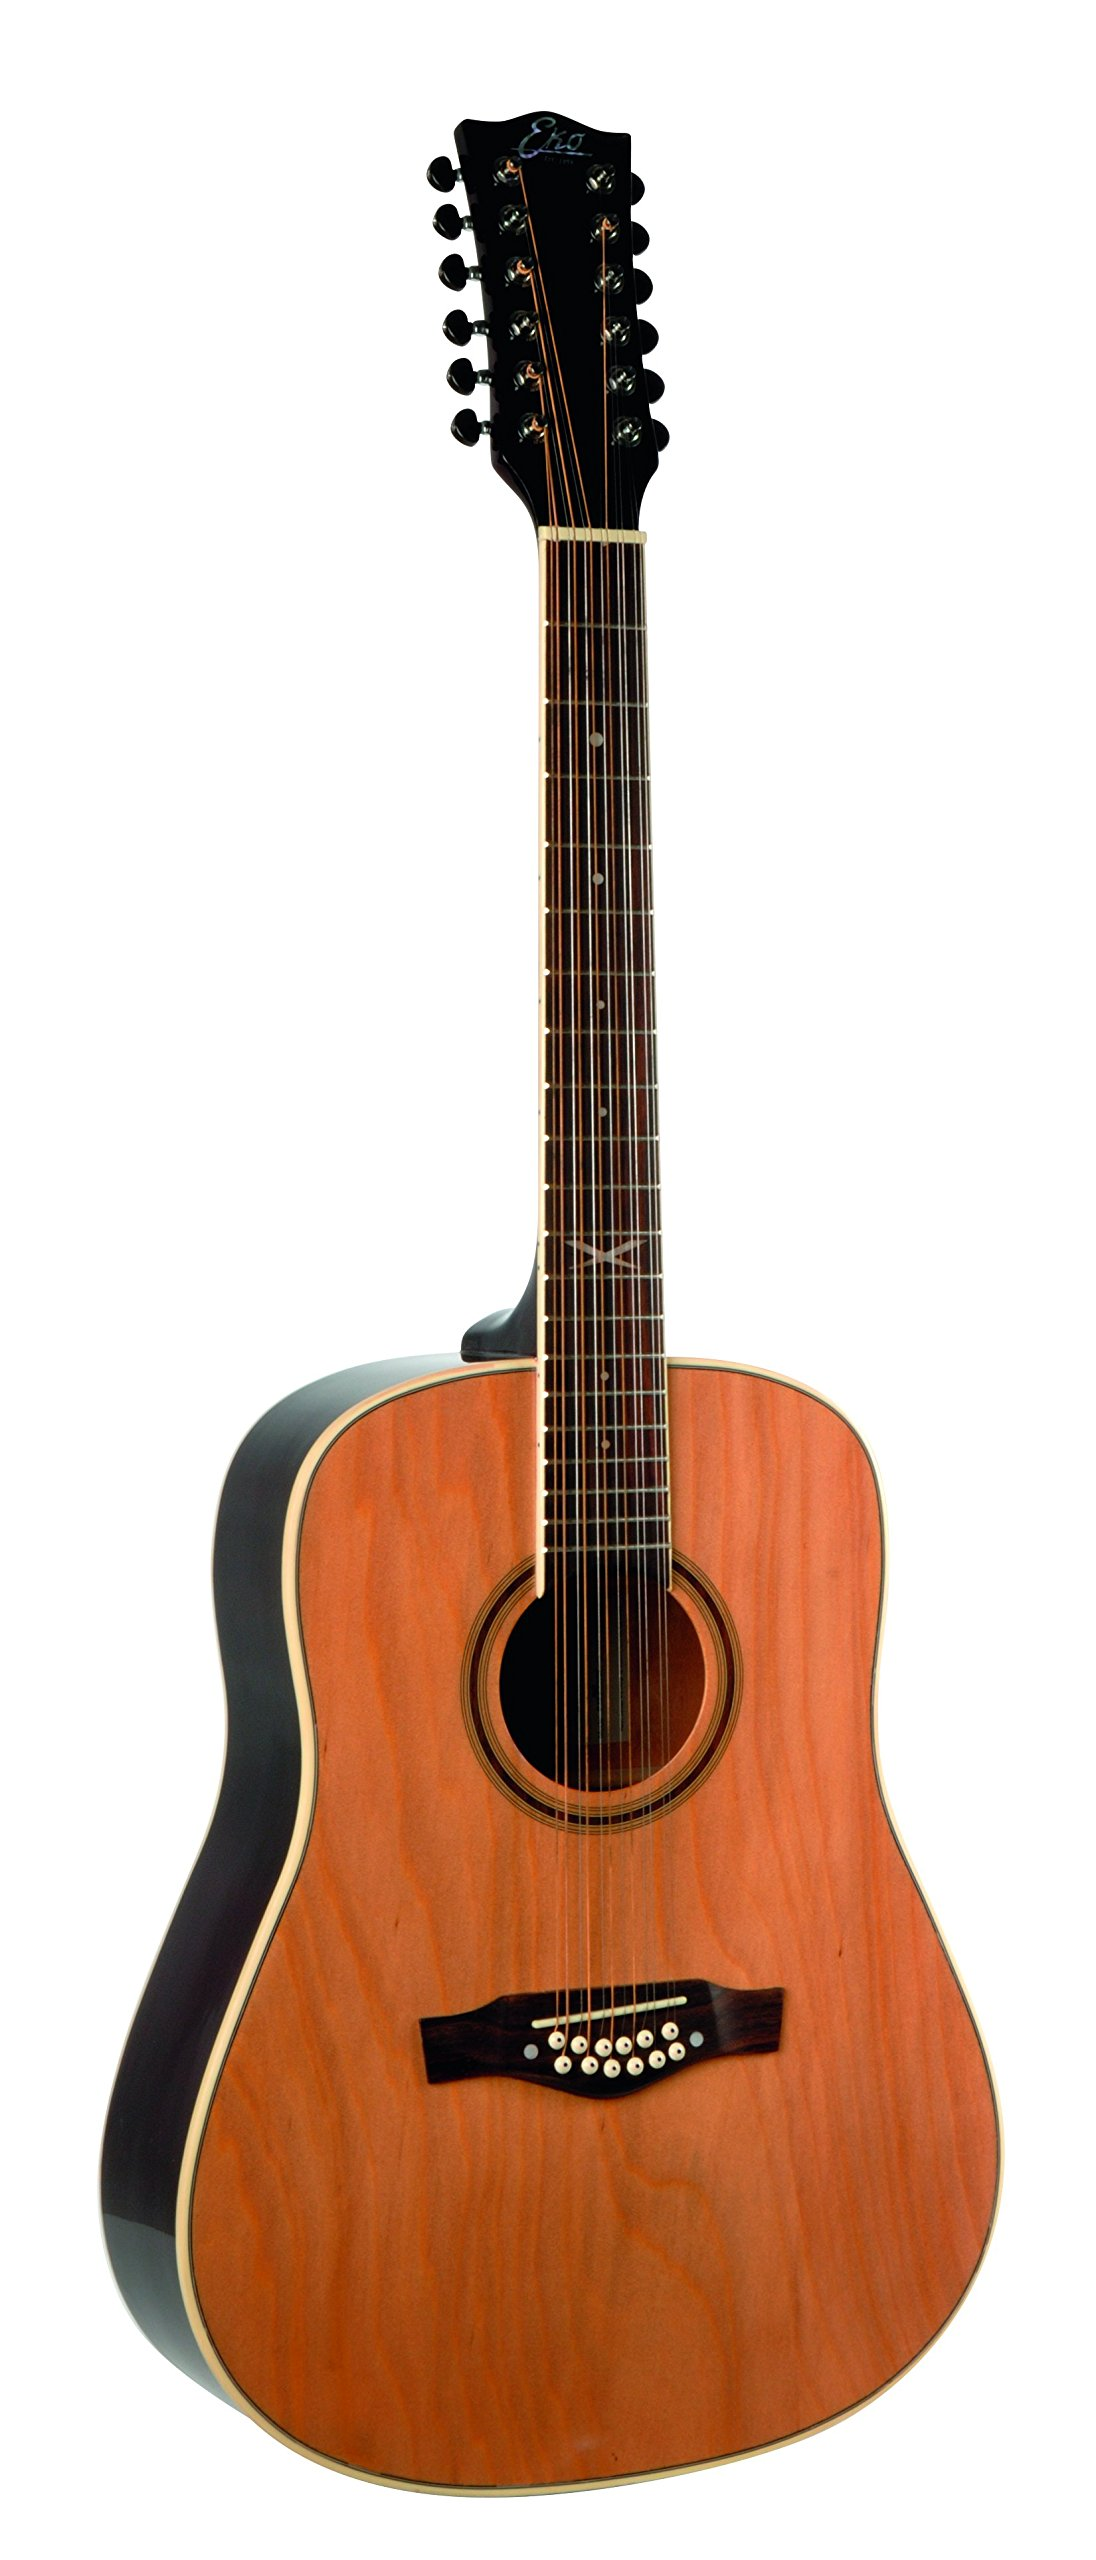 eko guitars 06217010 nxt series 12 string dreadnought acoustic guitar natural guitar affinity. Black Bedroom Furniture Sets. Home Design Ideas